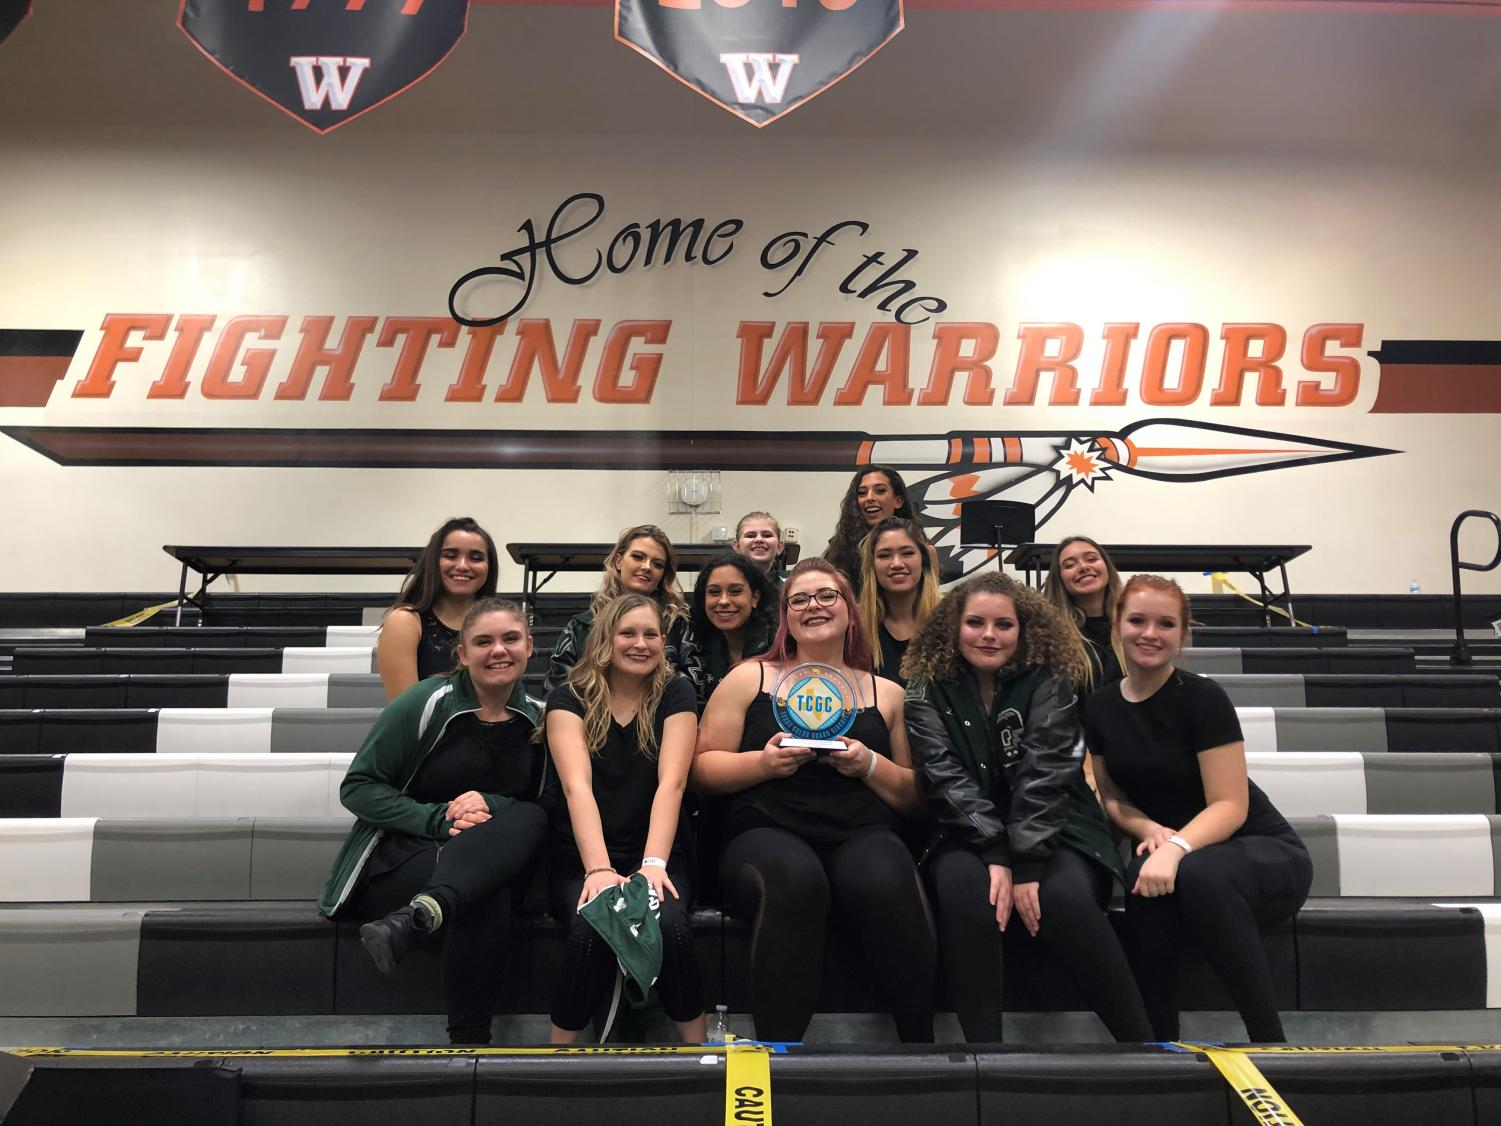 Containing their excitement, color guard poses for the camera after winning first place.